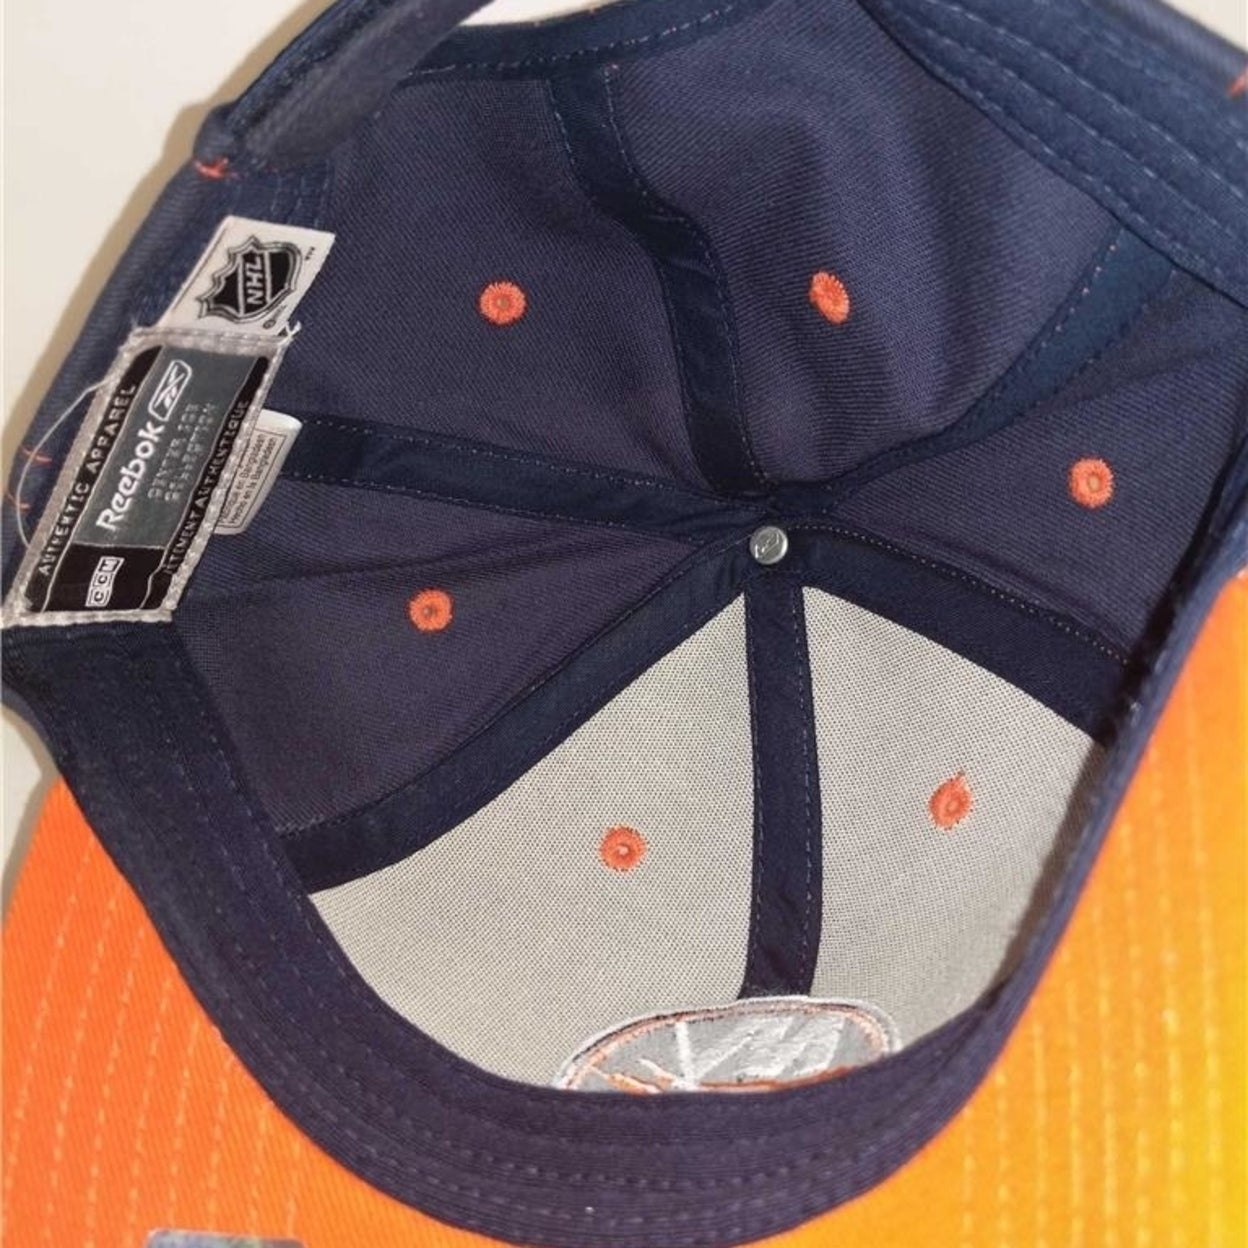 d41e2a2406803b Shop NY Islanders Mens Size Osfa Reebok Gray Blue Adjustable Cap Hat - Free  Shipping On Orders Over $45 - Overstock - 23063975